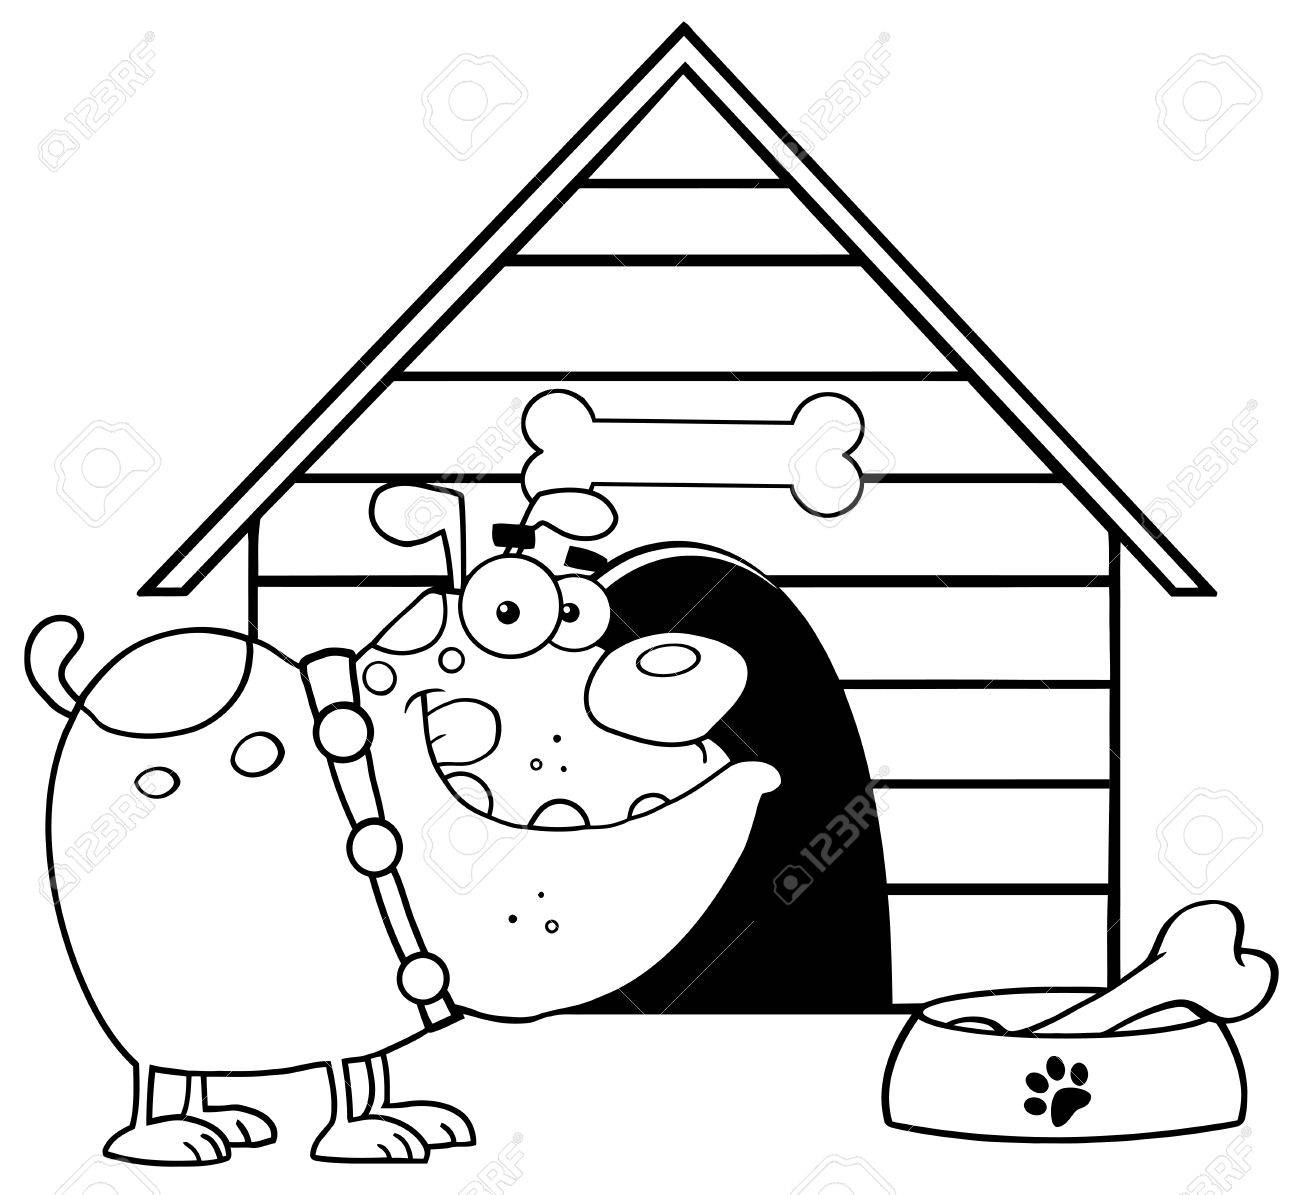 Outlined Bulldog With Bowl And Bone In Front Of His Dog House Stock Vector - 12991459